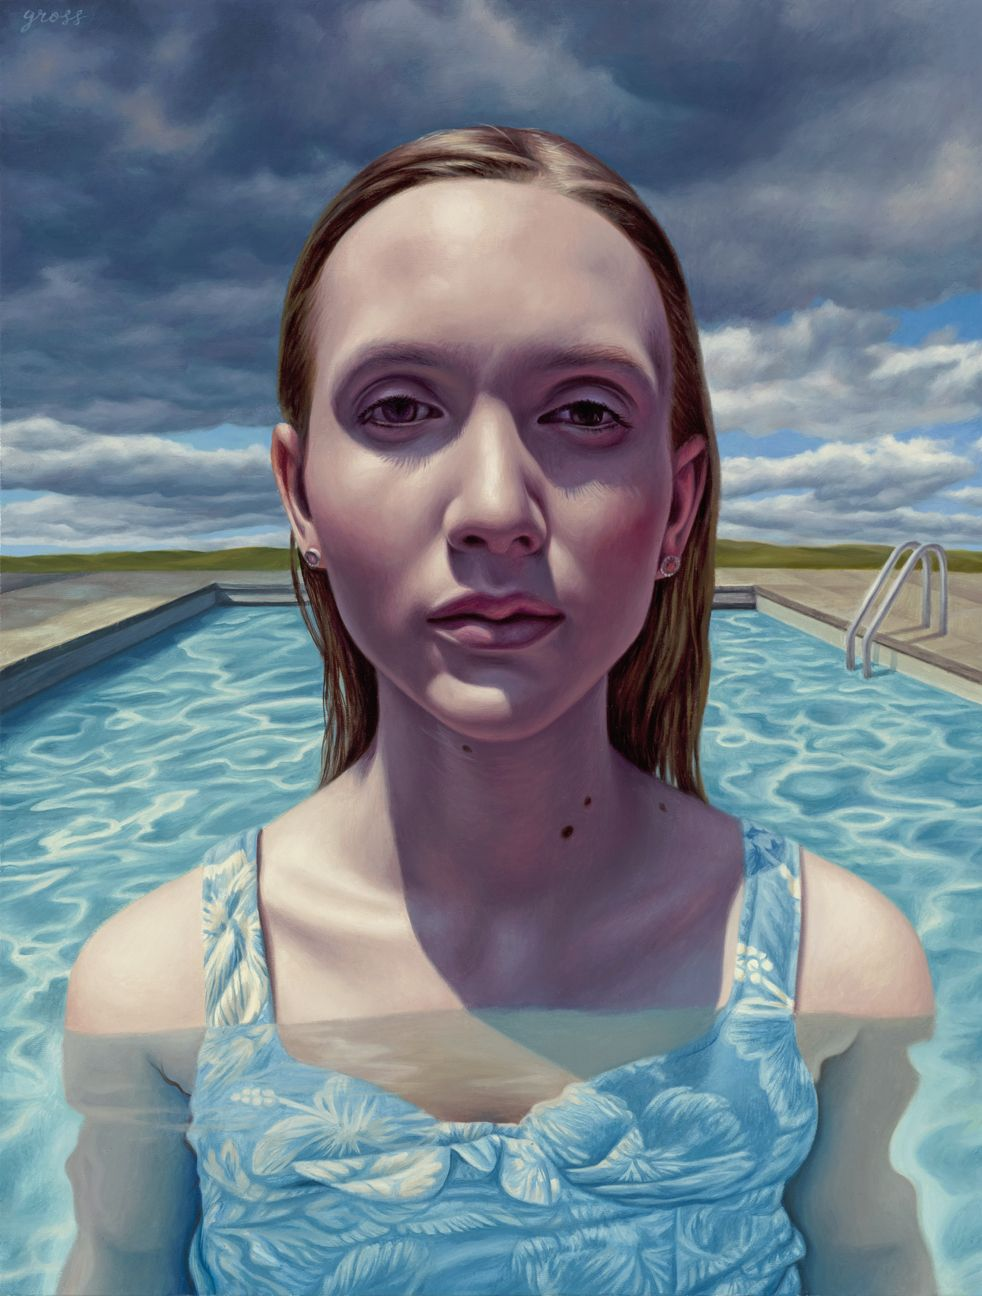 Alex Gross - Approaching Storm #alexgross #jonathanlevinegallery